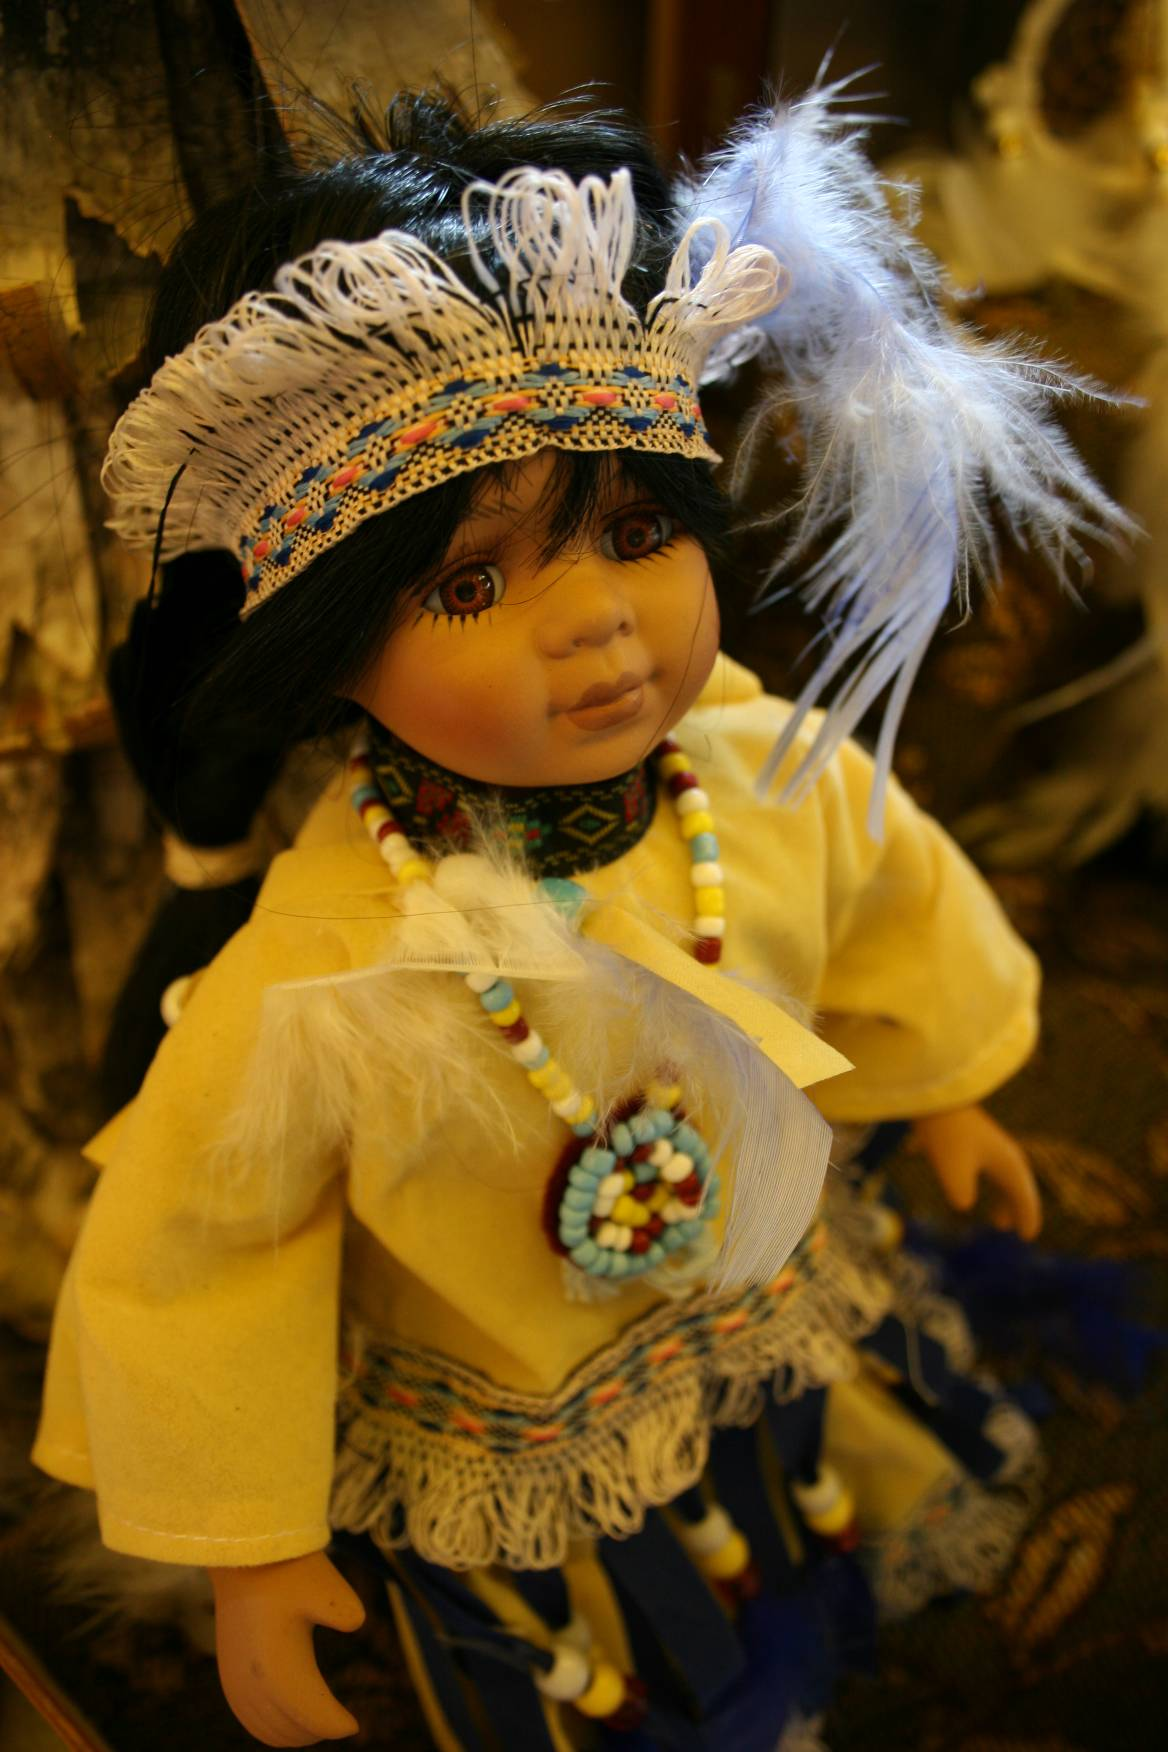 A Native American doll for sale at the Itasca State Park gift shop. Native American crafts, foods and more are featured in the Art Leap tour and can be seen at Strawberry Lake Corner.